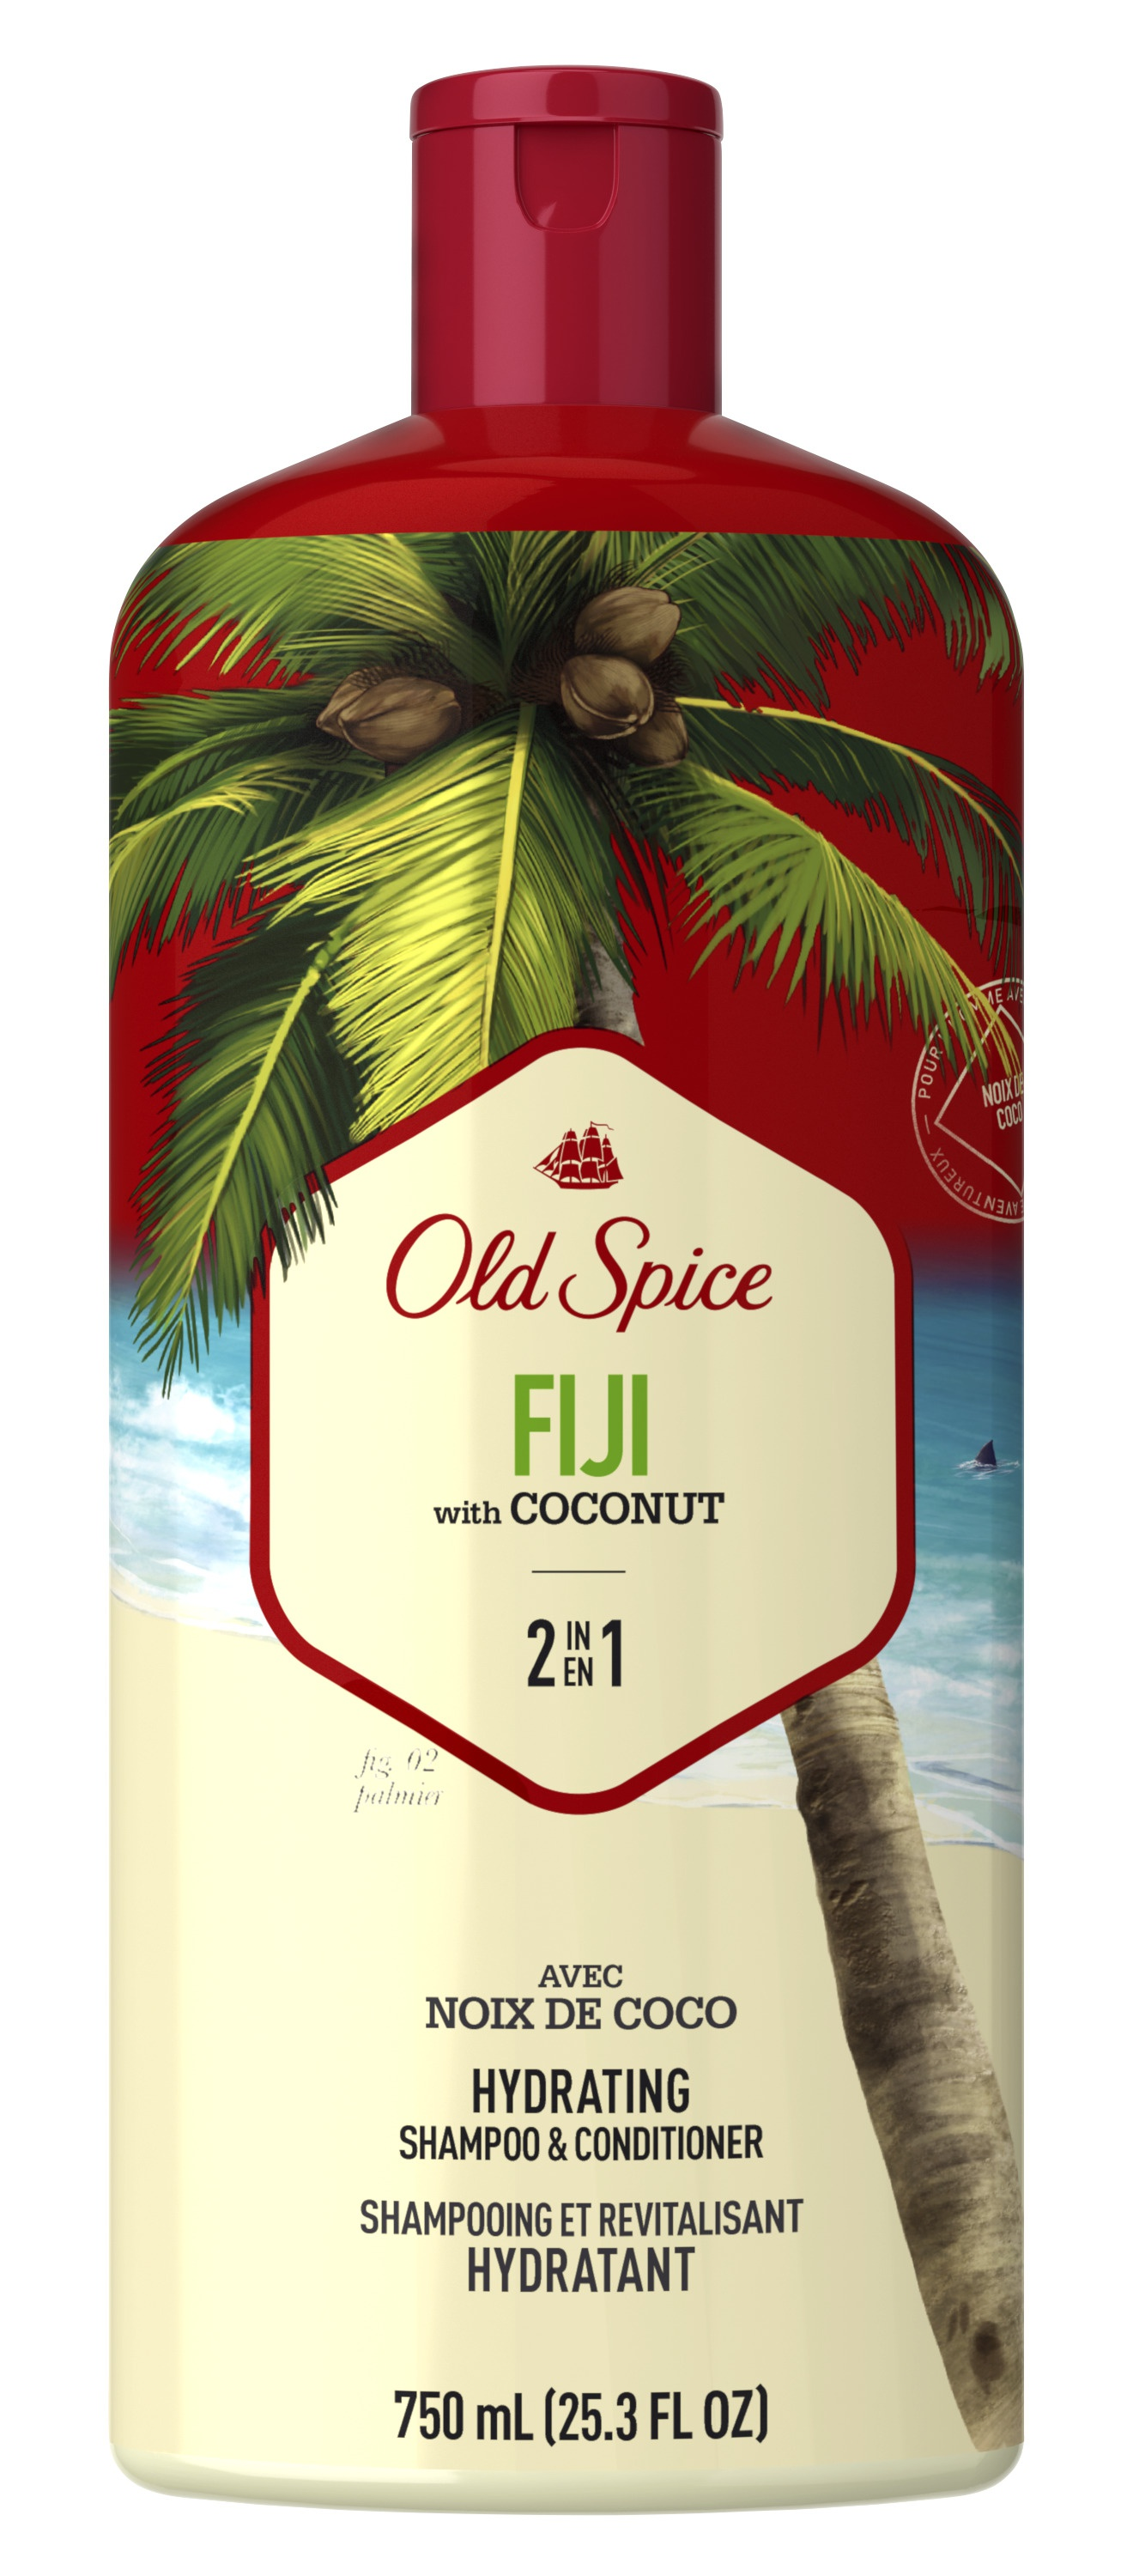 Old Spice Fiji 2In1 Shampoo And Conditioner